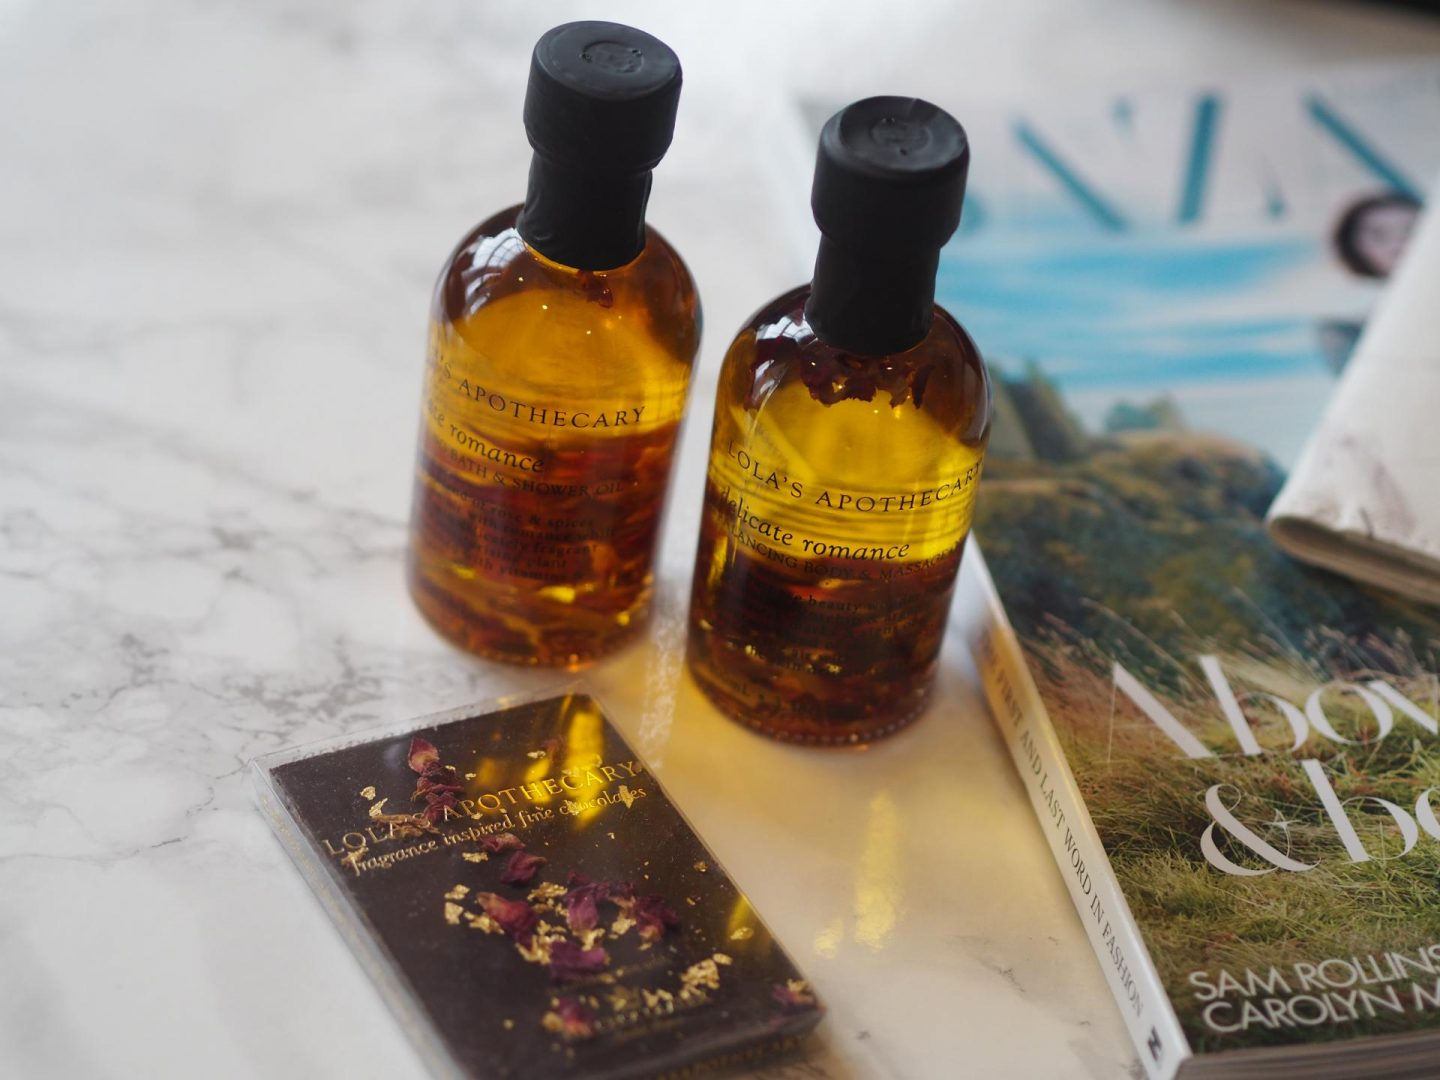 All Around The World Beauty - Product: Lola's Apothecary Delicate Romance Balancing Body & Massage Oil